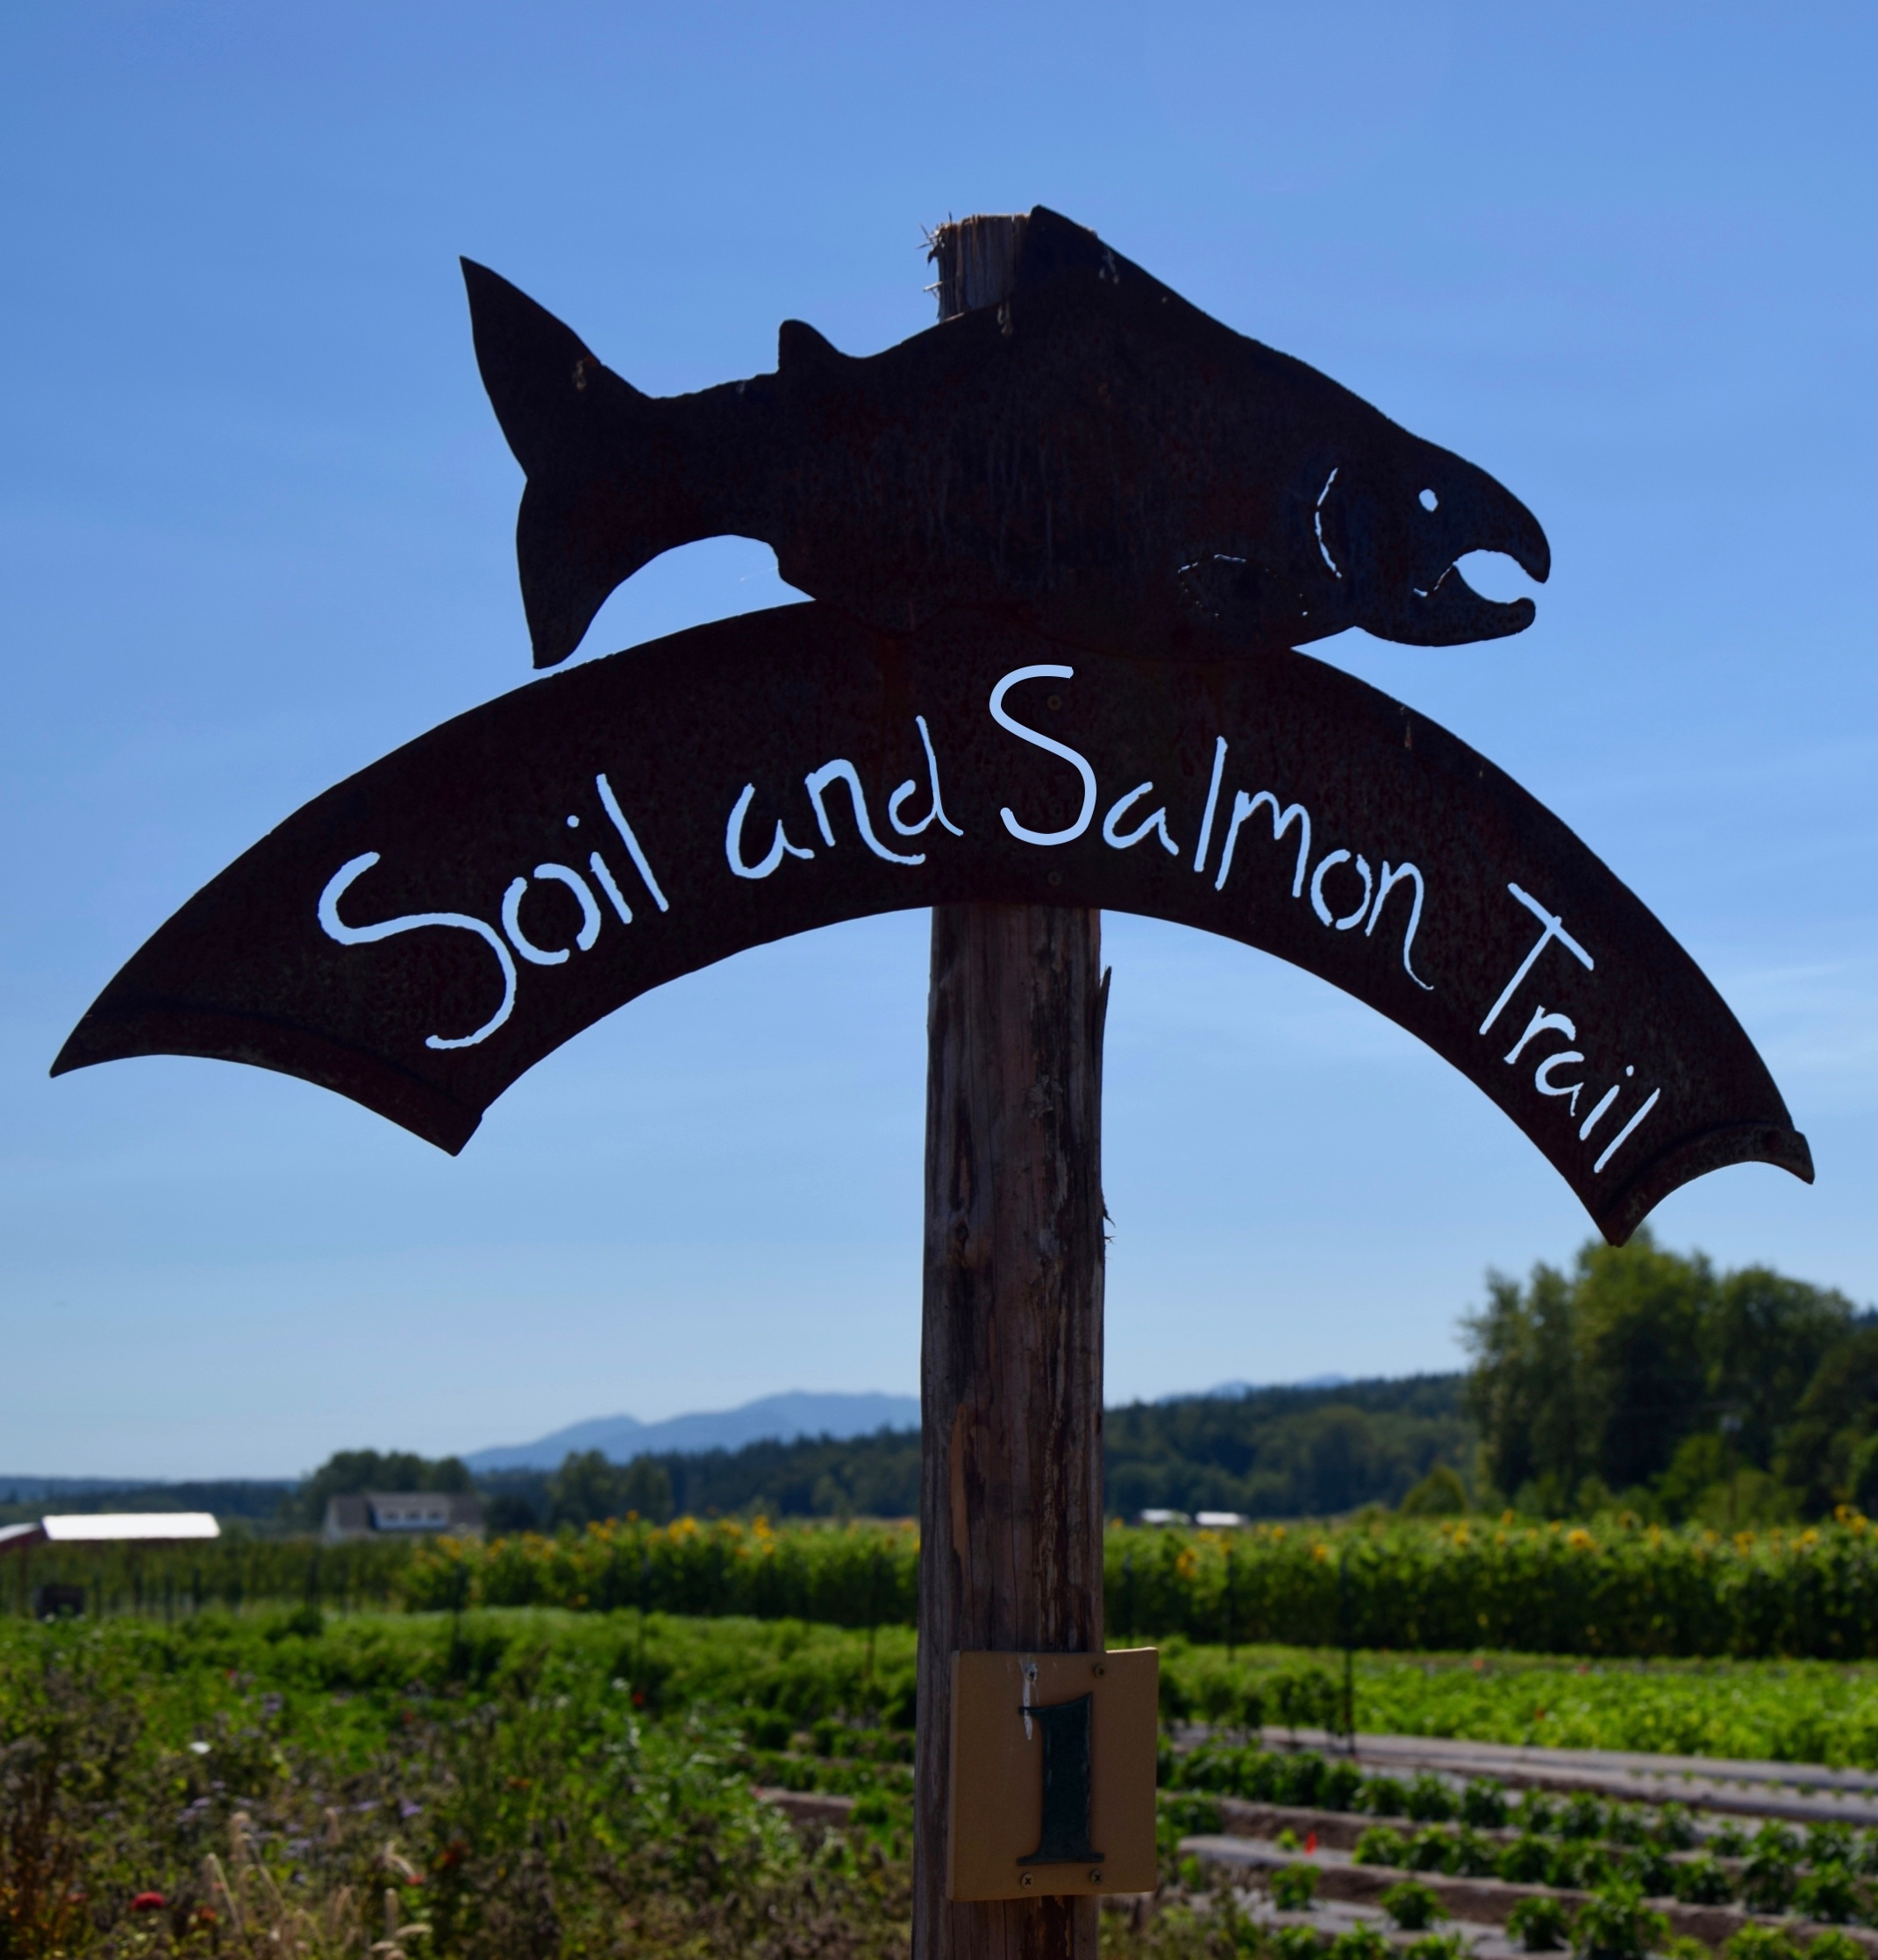 Finn River Soil and Salmon Trail Sign